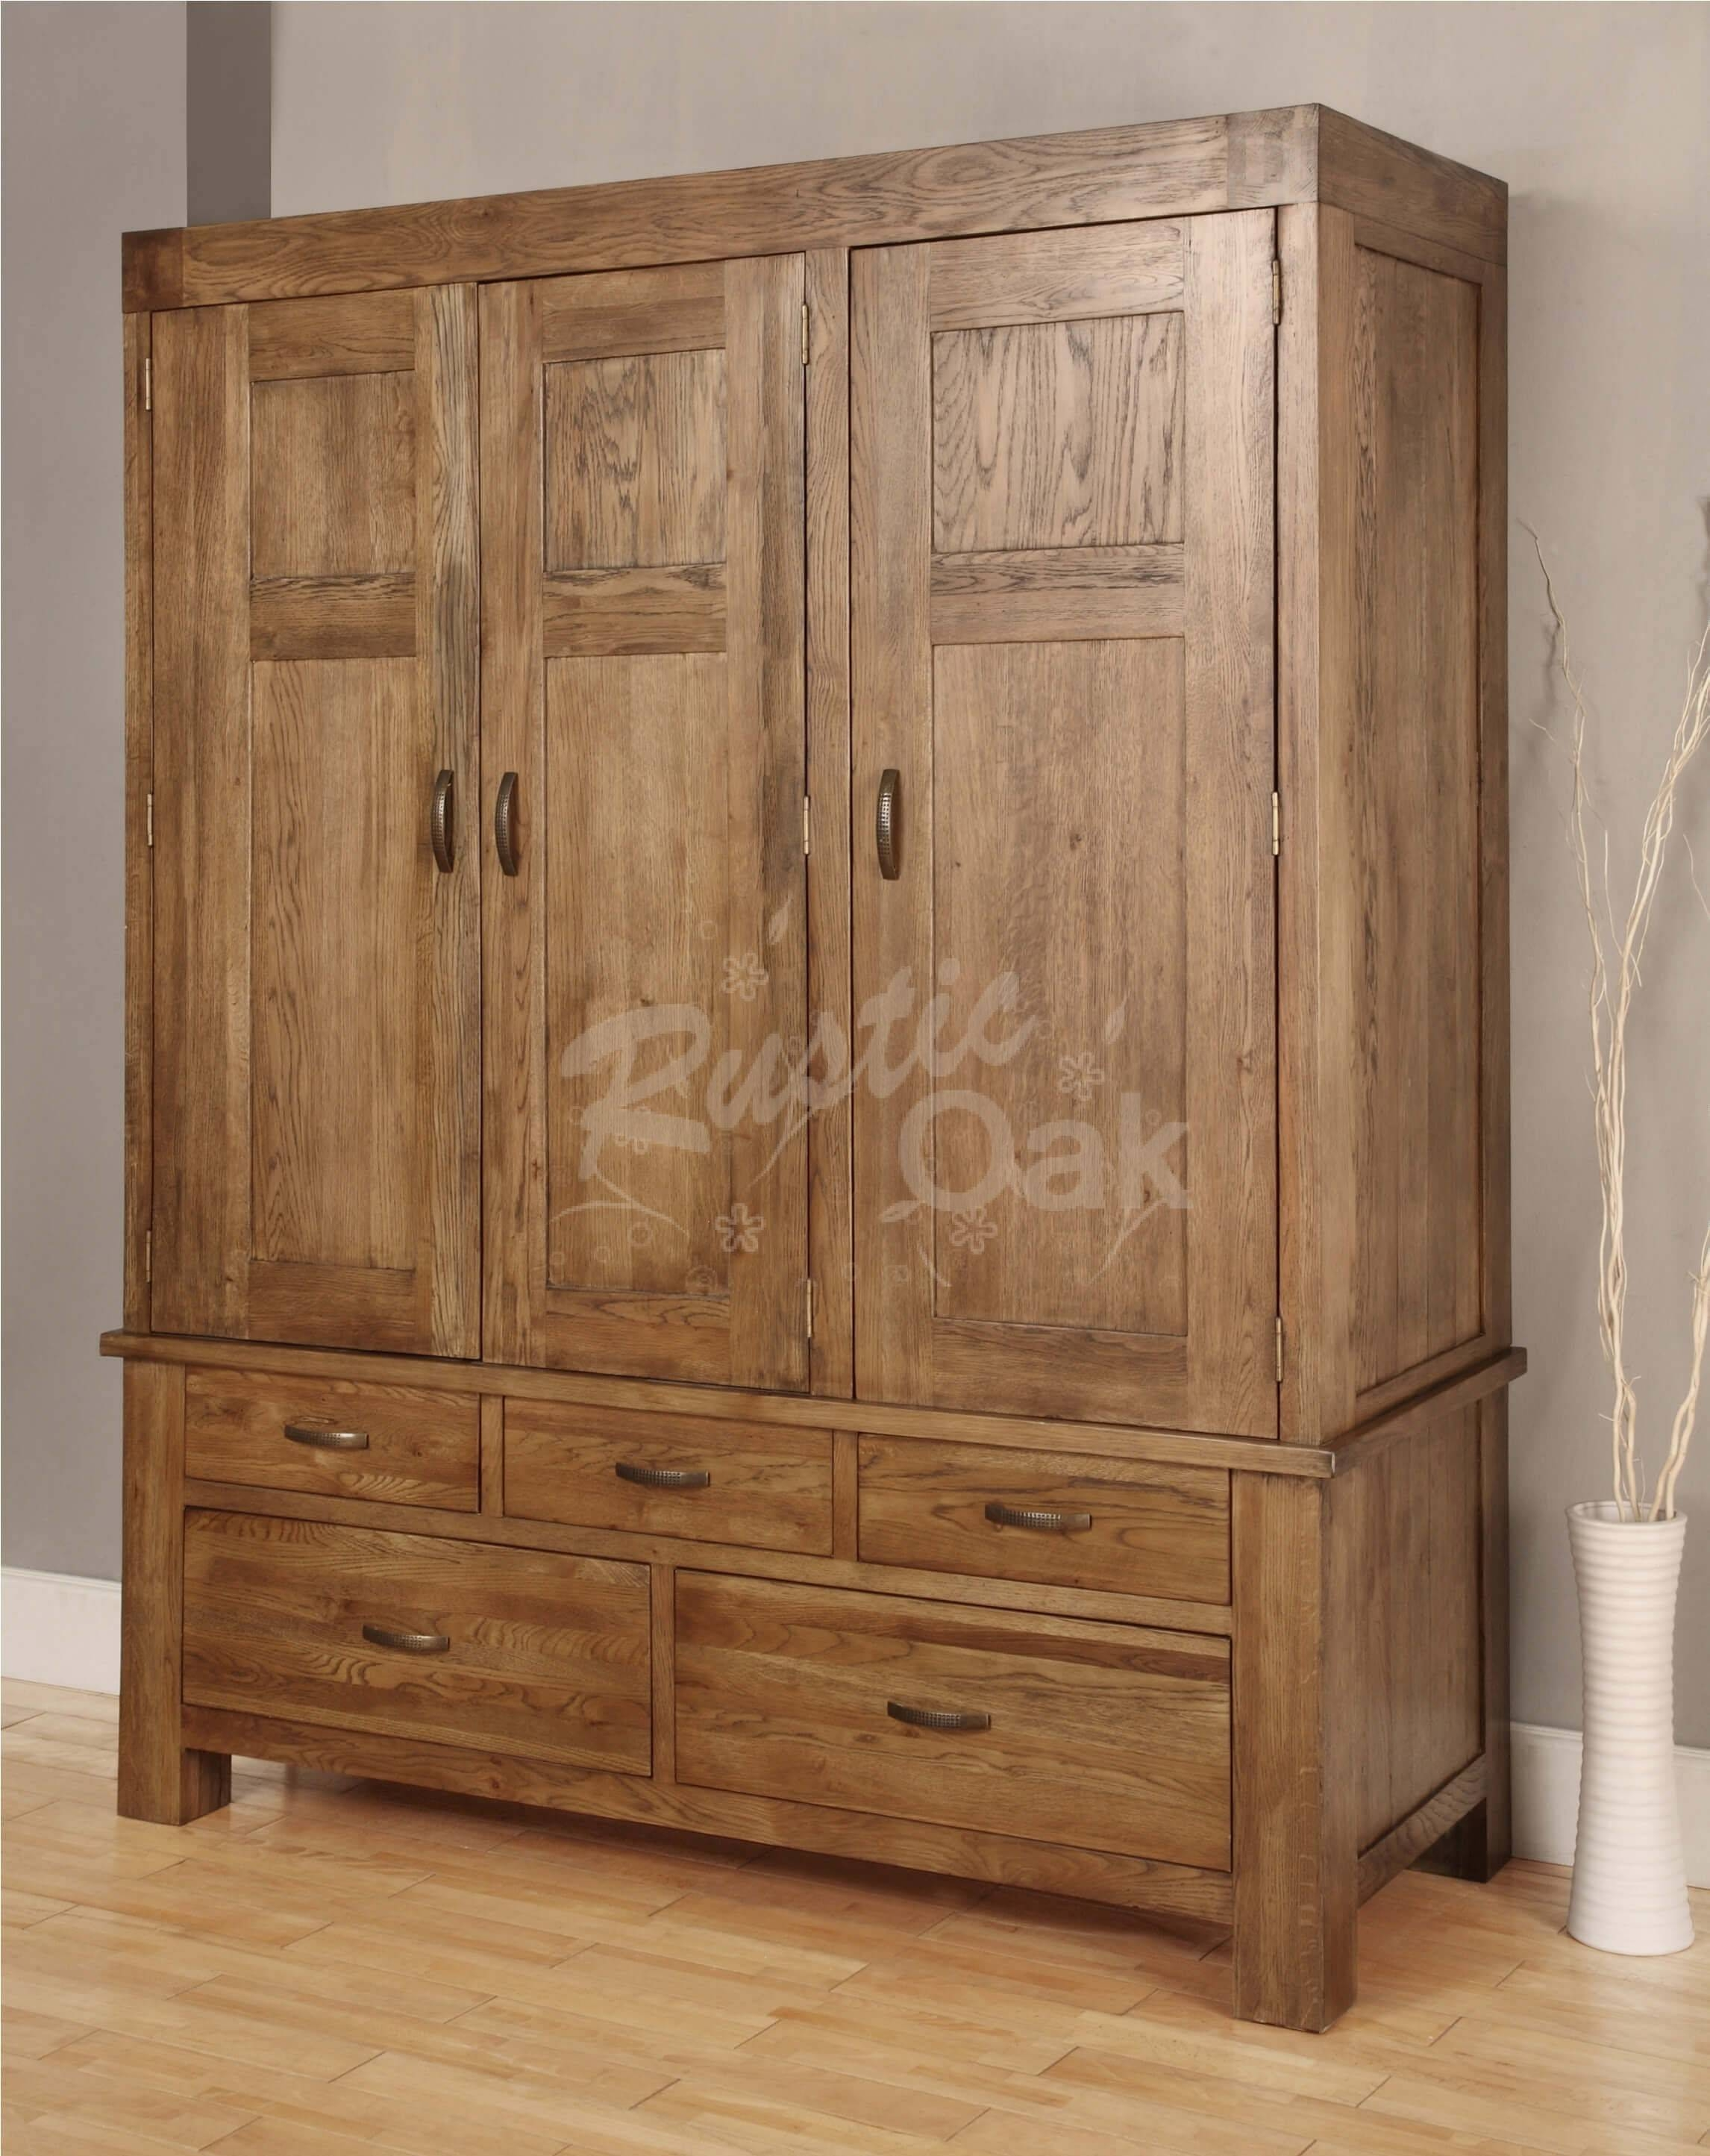 Santana Triple Wardrobe - Rustic Oak Furniture with Triple Wardrobes With Drawers (Image 13 of 15)